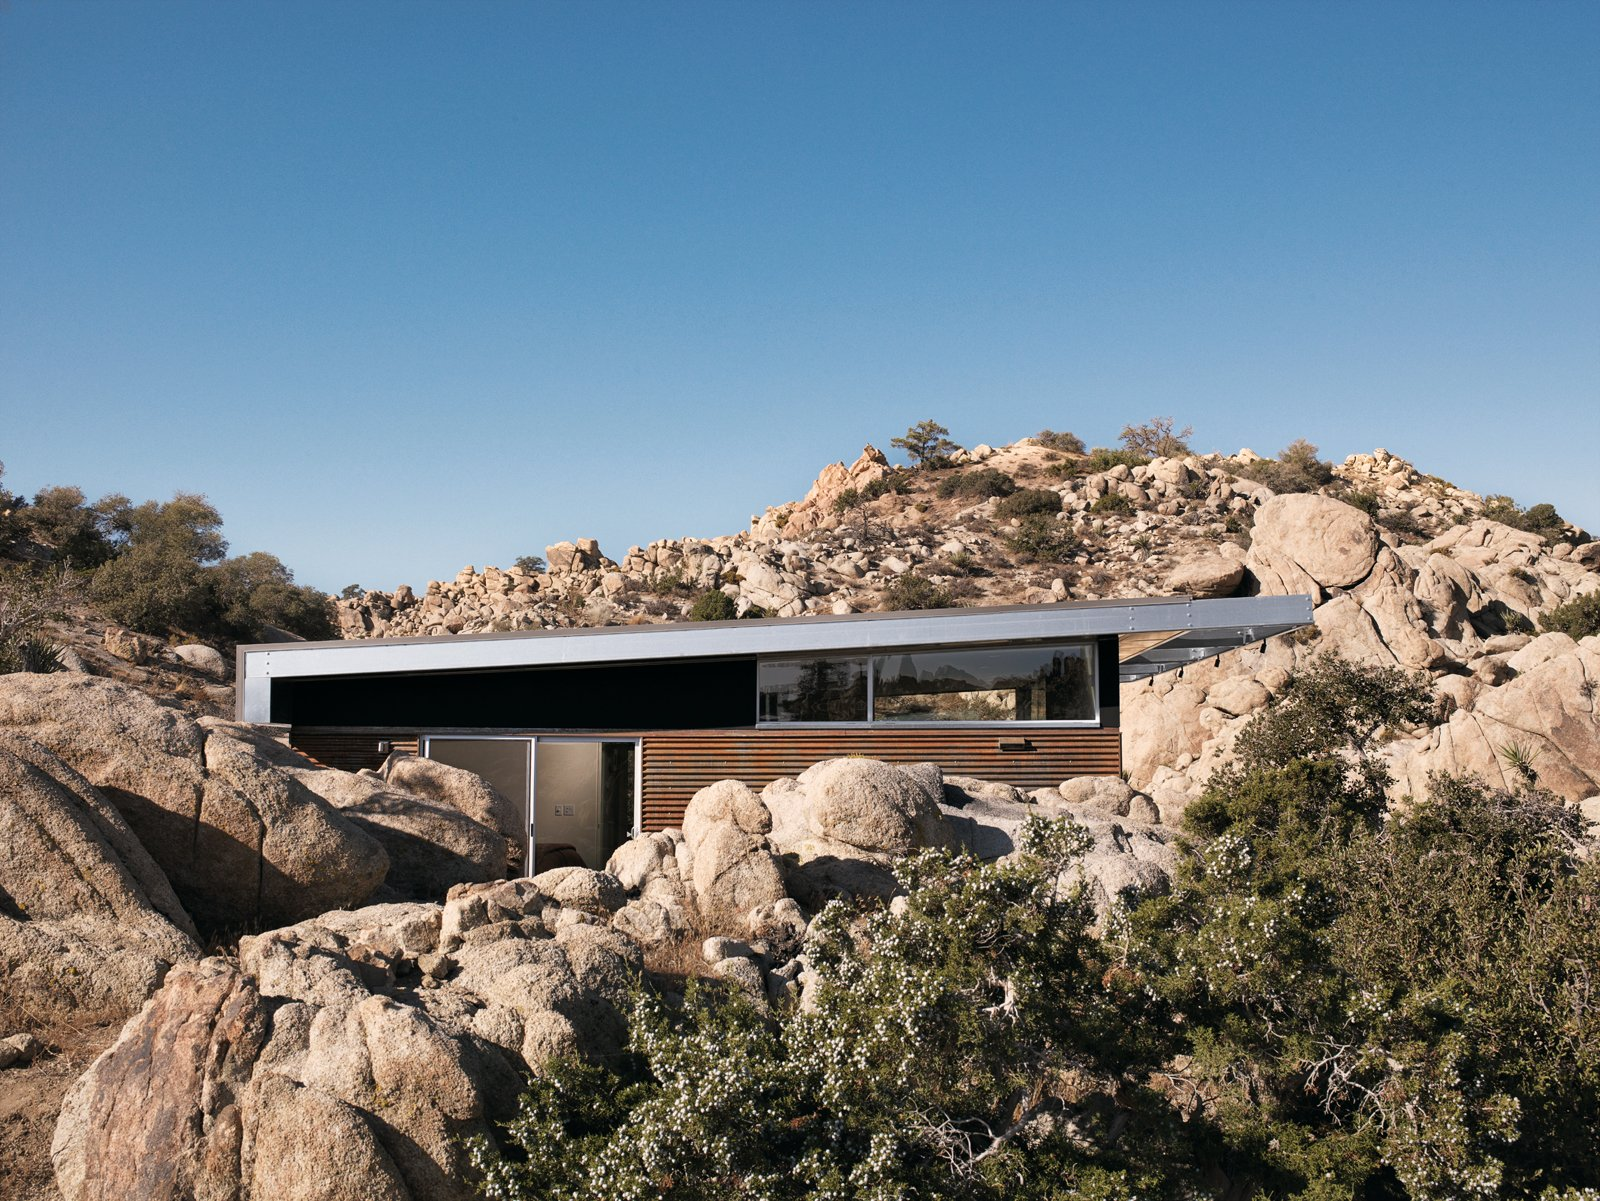 "For all its hard environmental work, one of the most immediate of the Blue Sky Home's pleasures is how it sits so snugly in its desert surroundings. Tagged: Outdoor and Desert.  Off the grid by Michela O'Connor Abrams from Small ""Hybrid Prefab"" Home in the Desert"